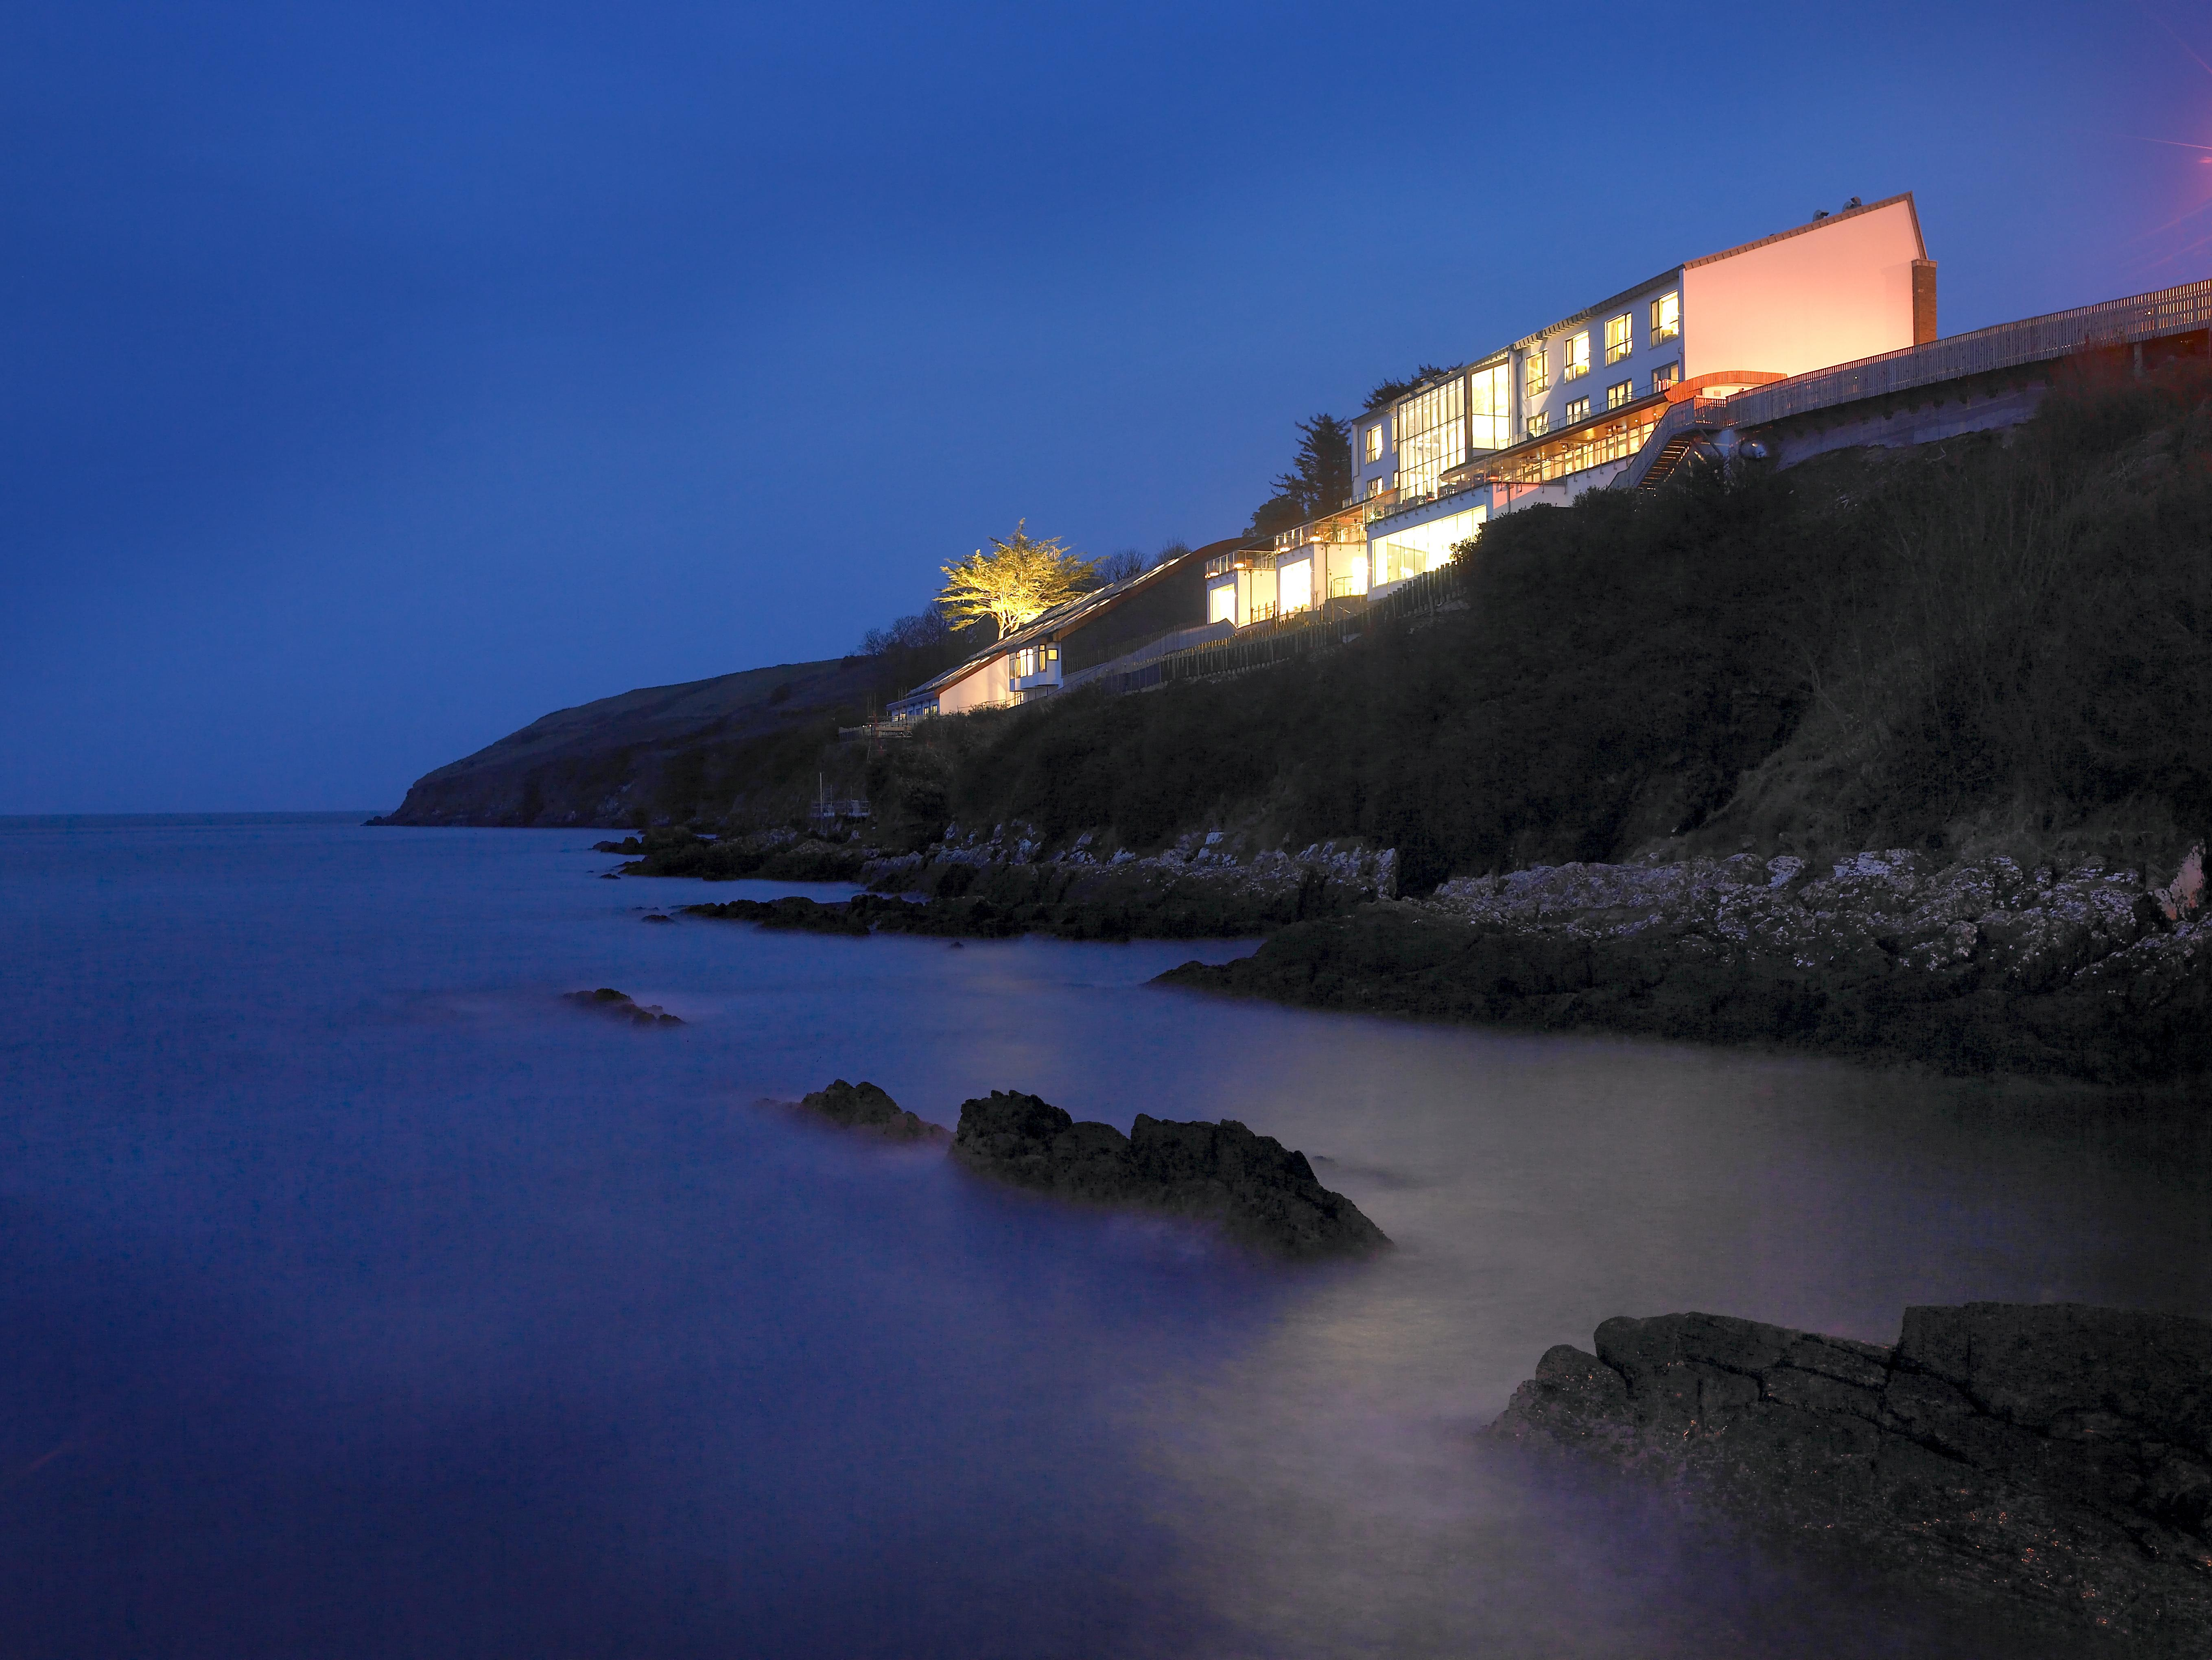 Cliff House Hotel Updated 2017 Prices Reviews Ardmore Ireland County Waterford Tripadvisor